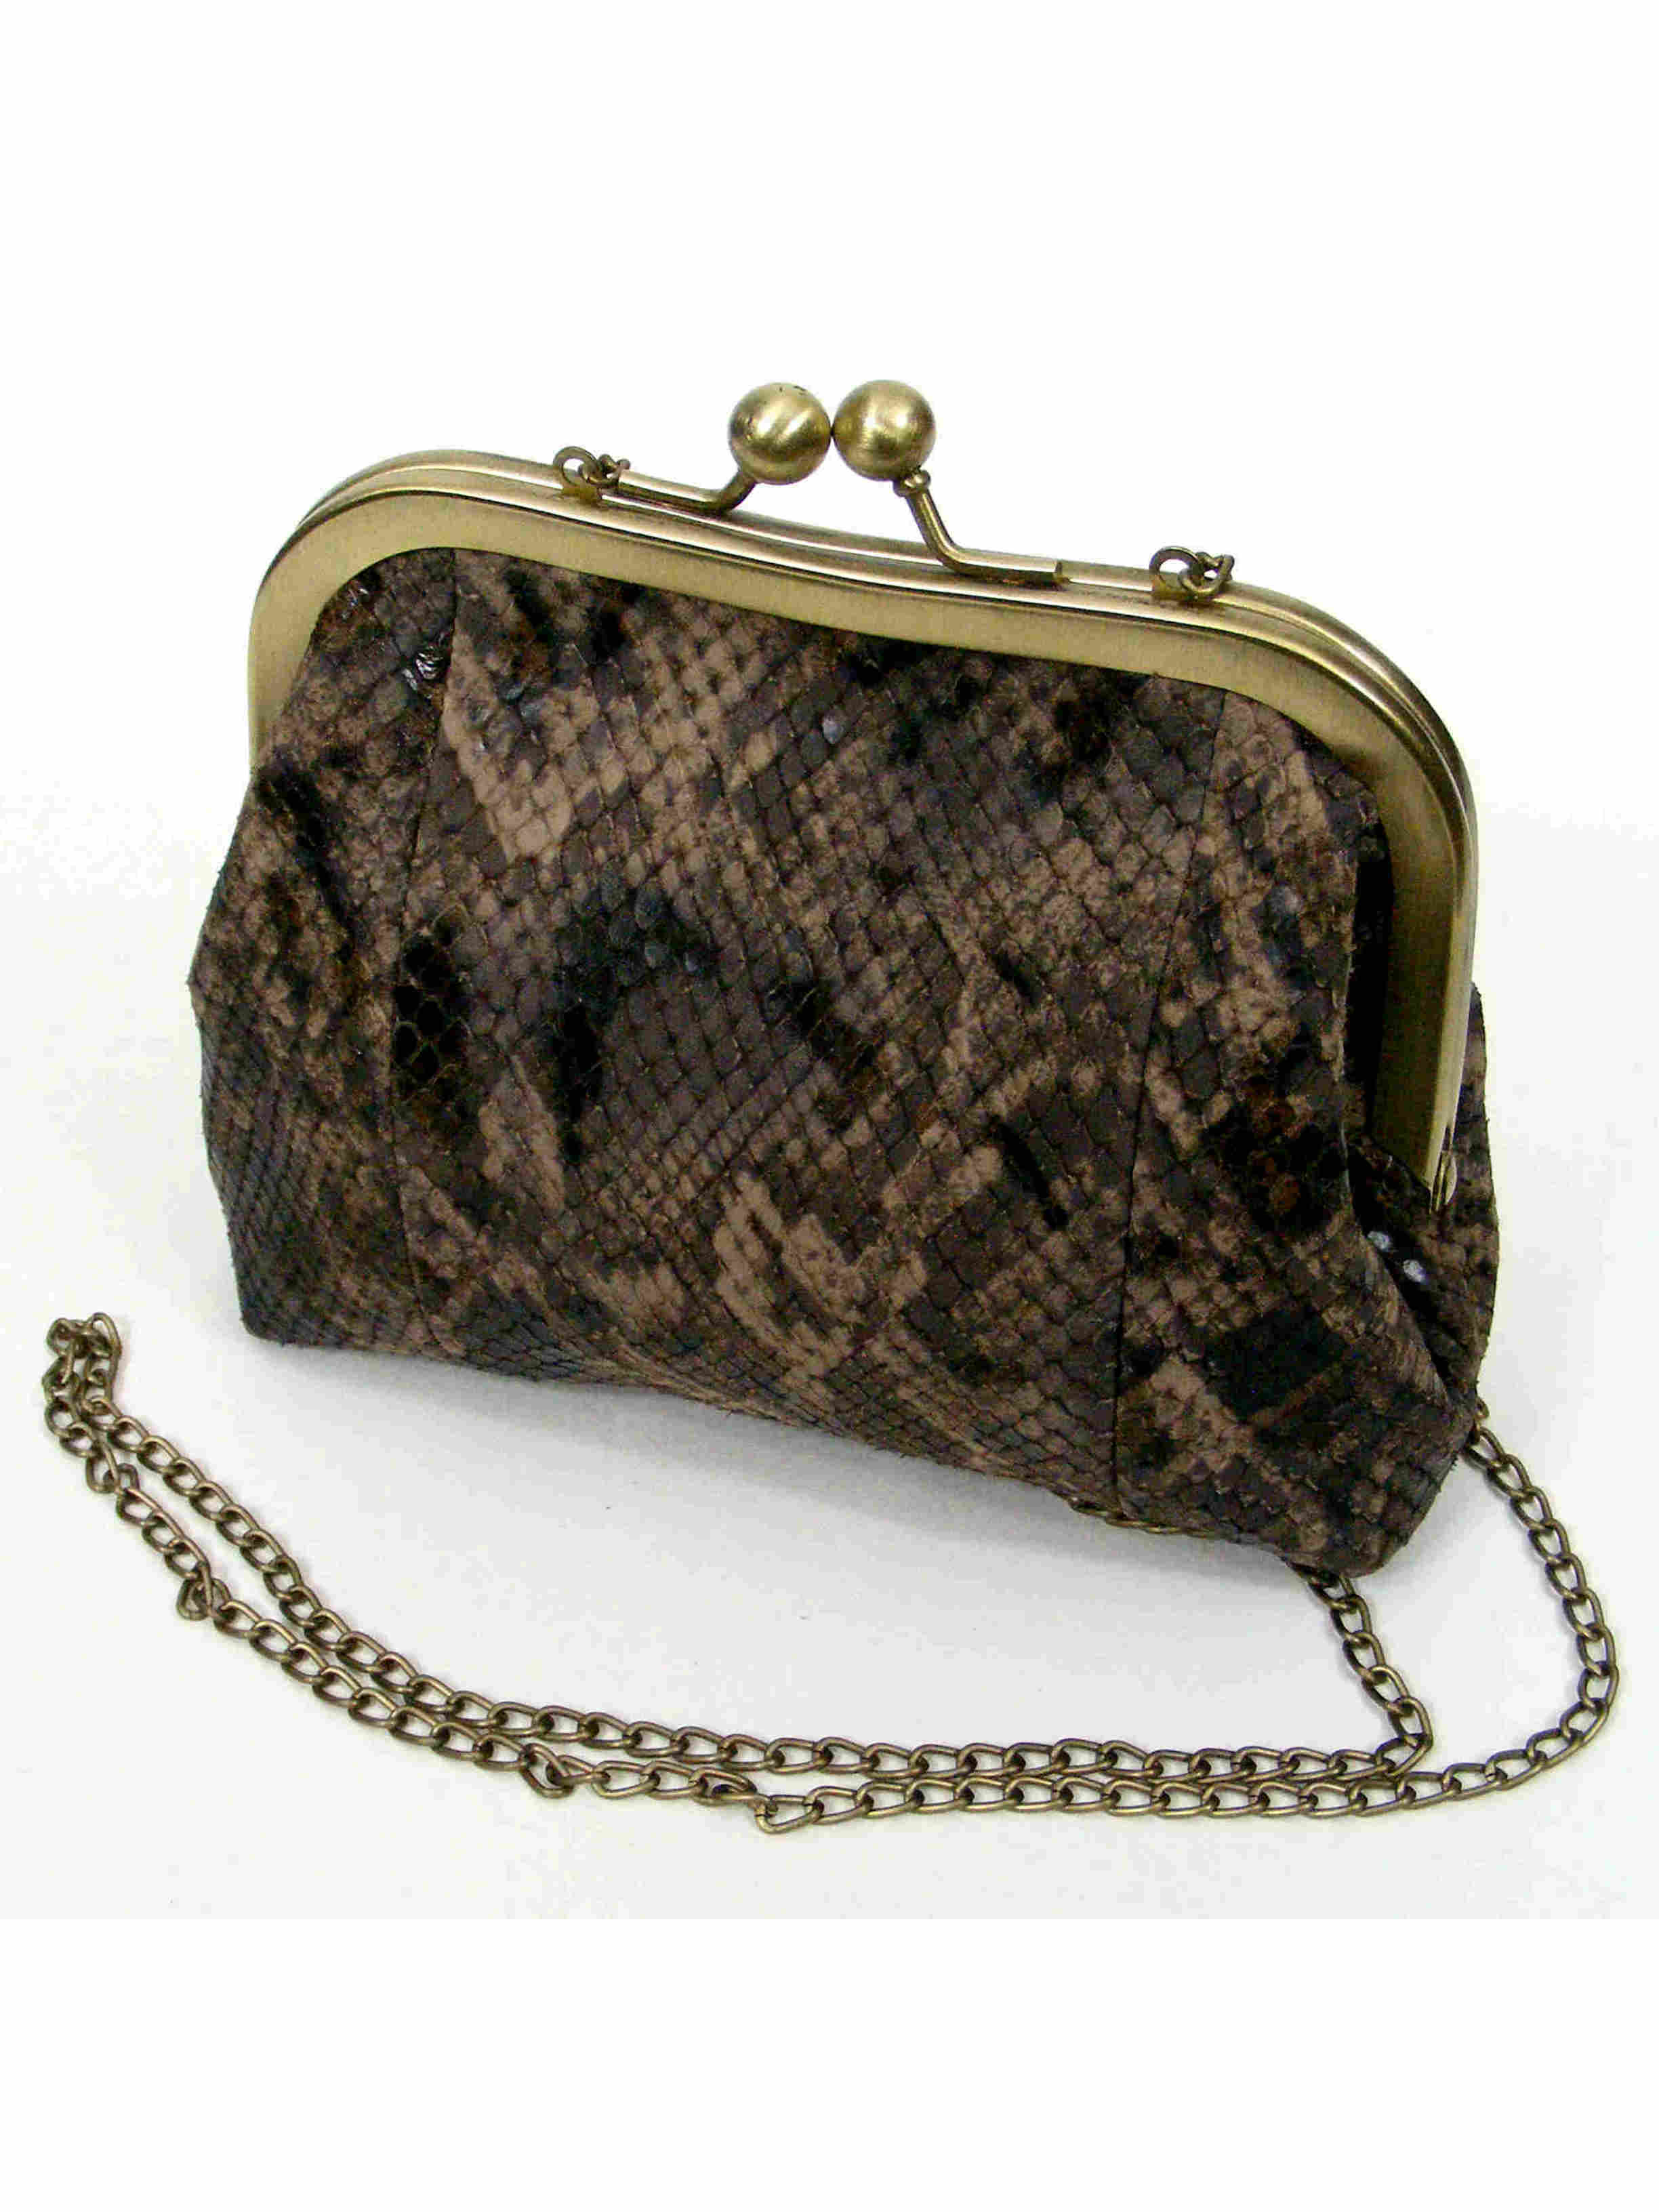 Leather Purse in Snake Skin Pattern - Sigal Levi Leather ...